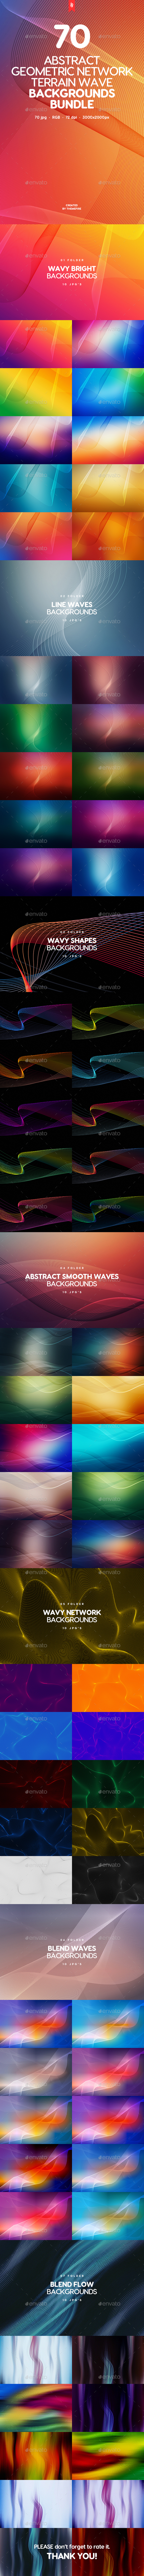 70 Geometric Network Terrain Wave Backgrounds Bundle - Abstract Backgrounds